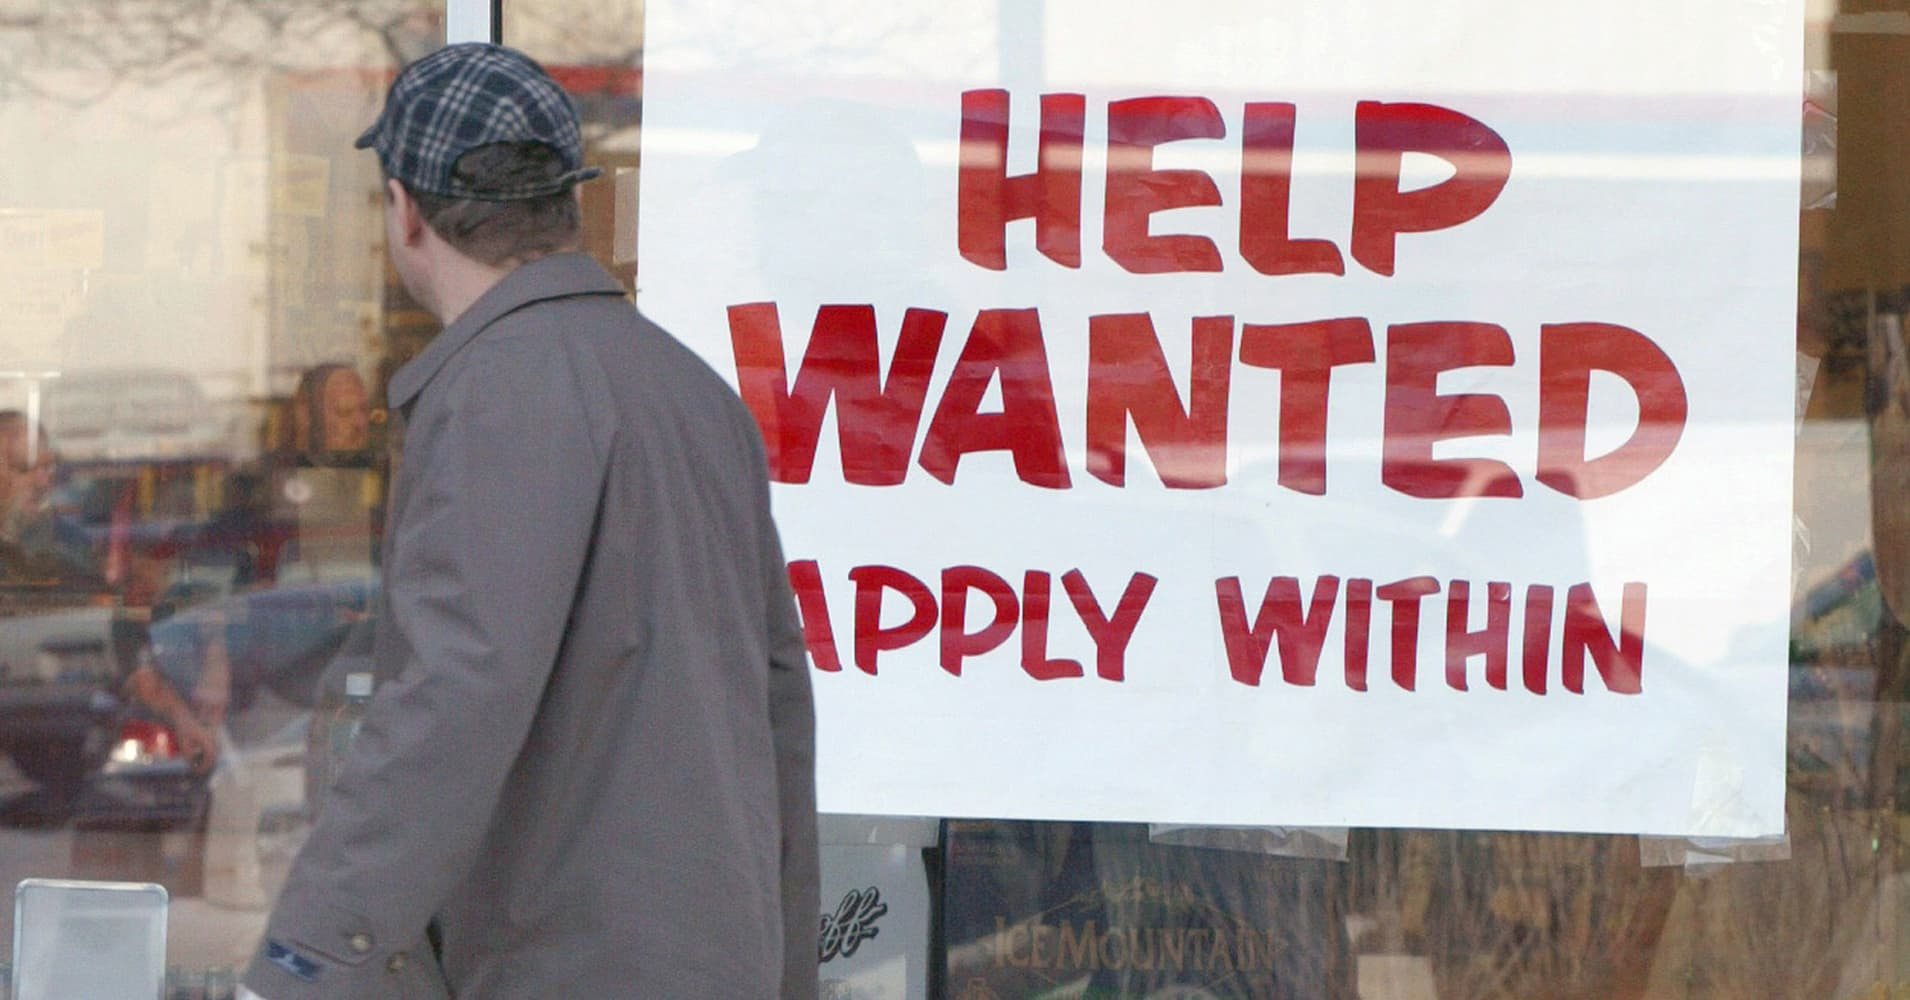 More than a third of small businesses can't fill open jobs, matching a record